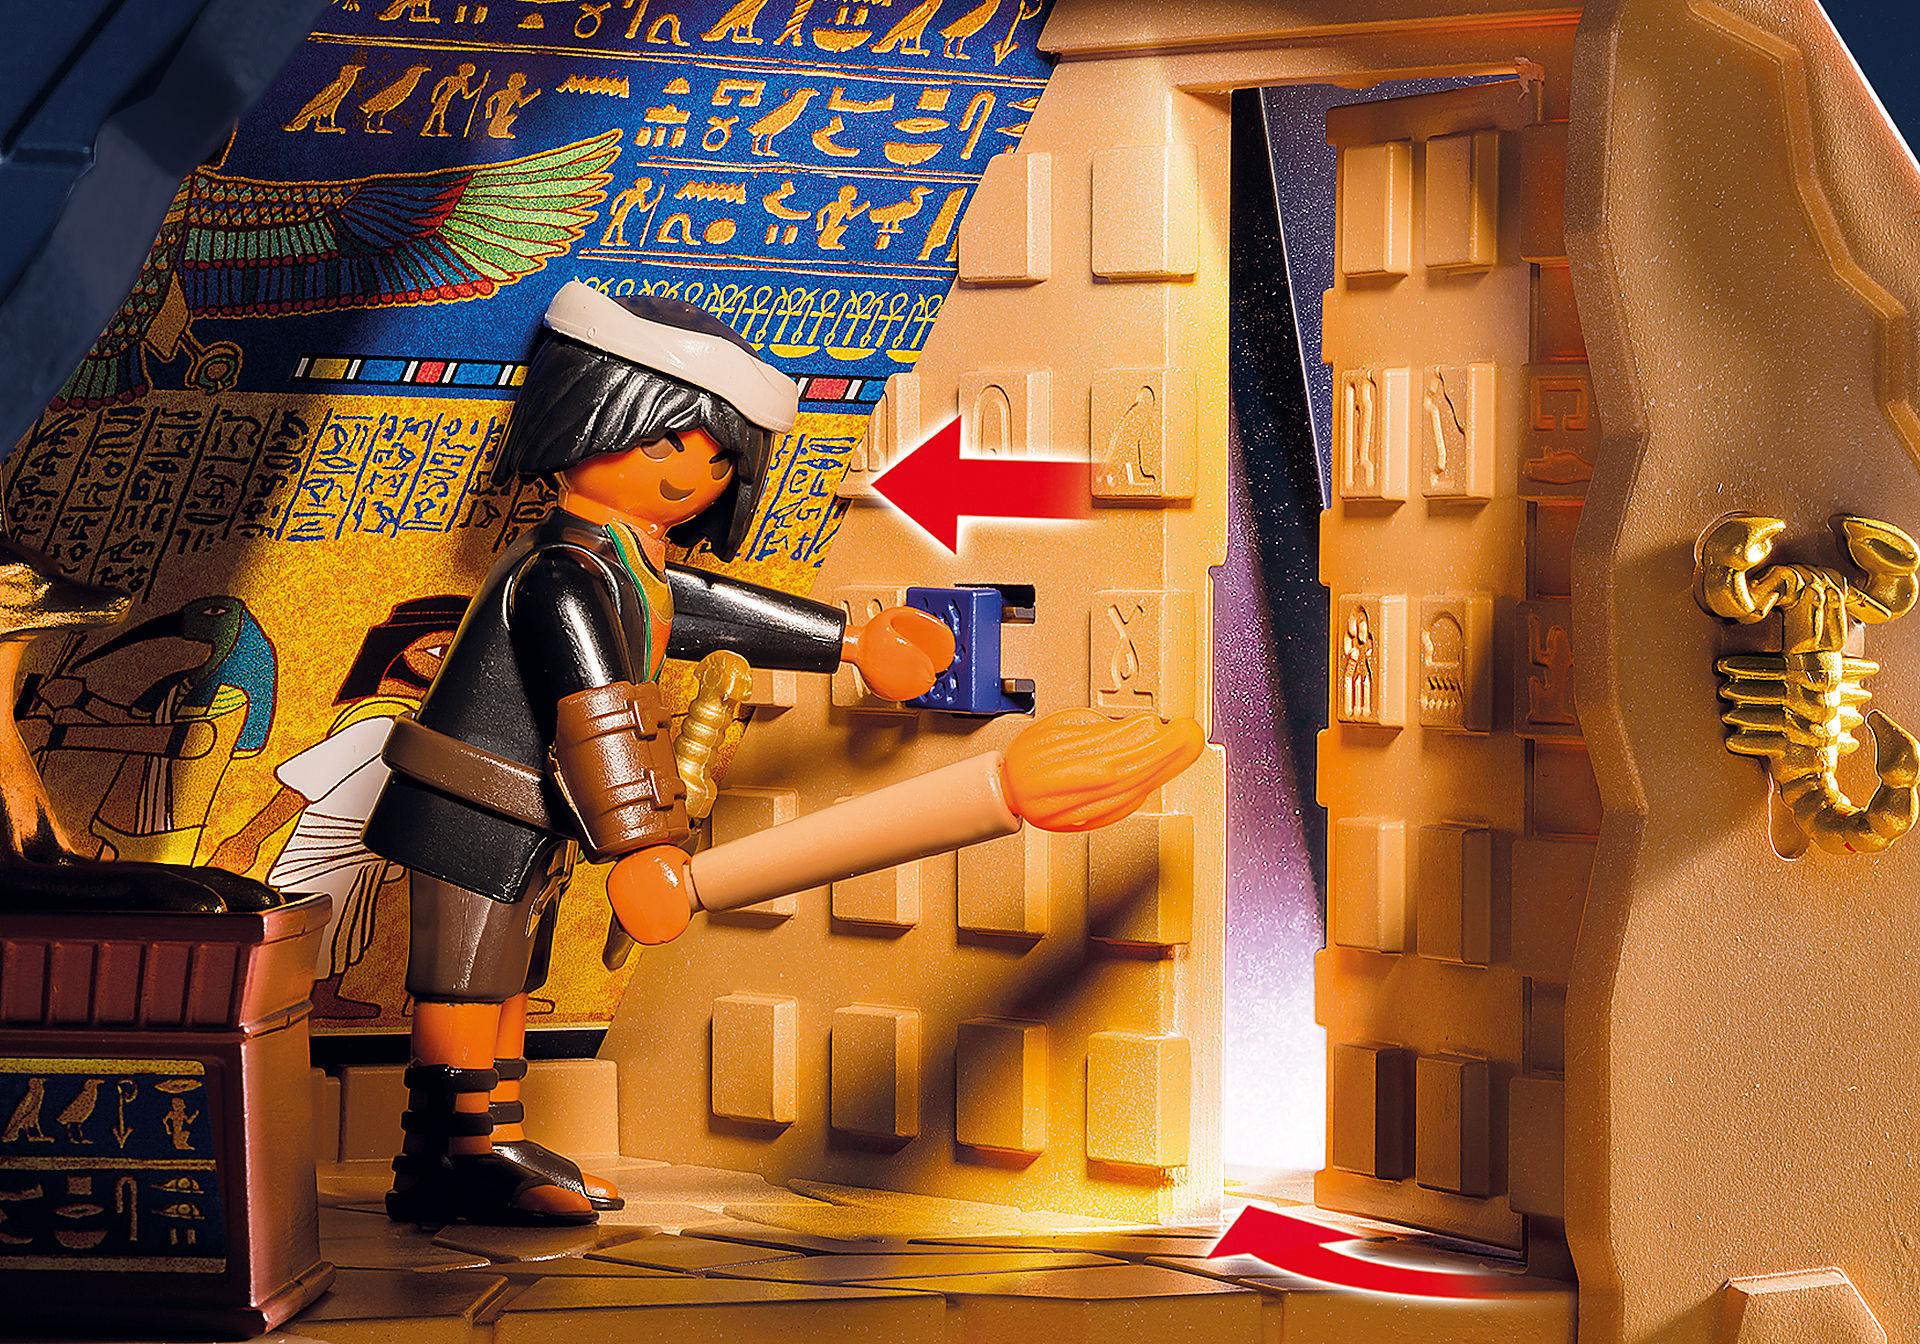 http://media.playmobil.com/i/playmobil/5386_product_extra3/Римляне и Египтяне: Пирамида Фараона